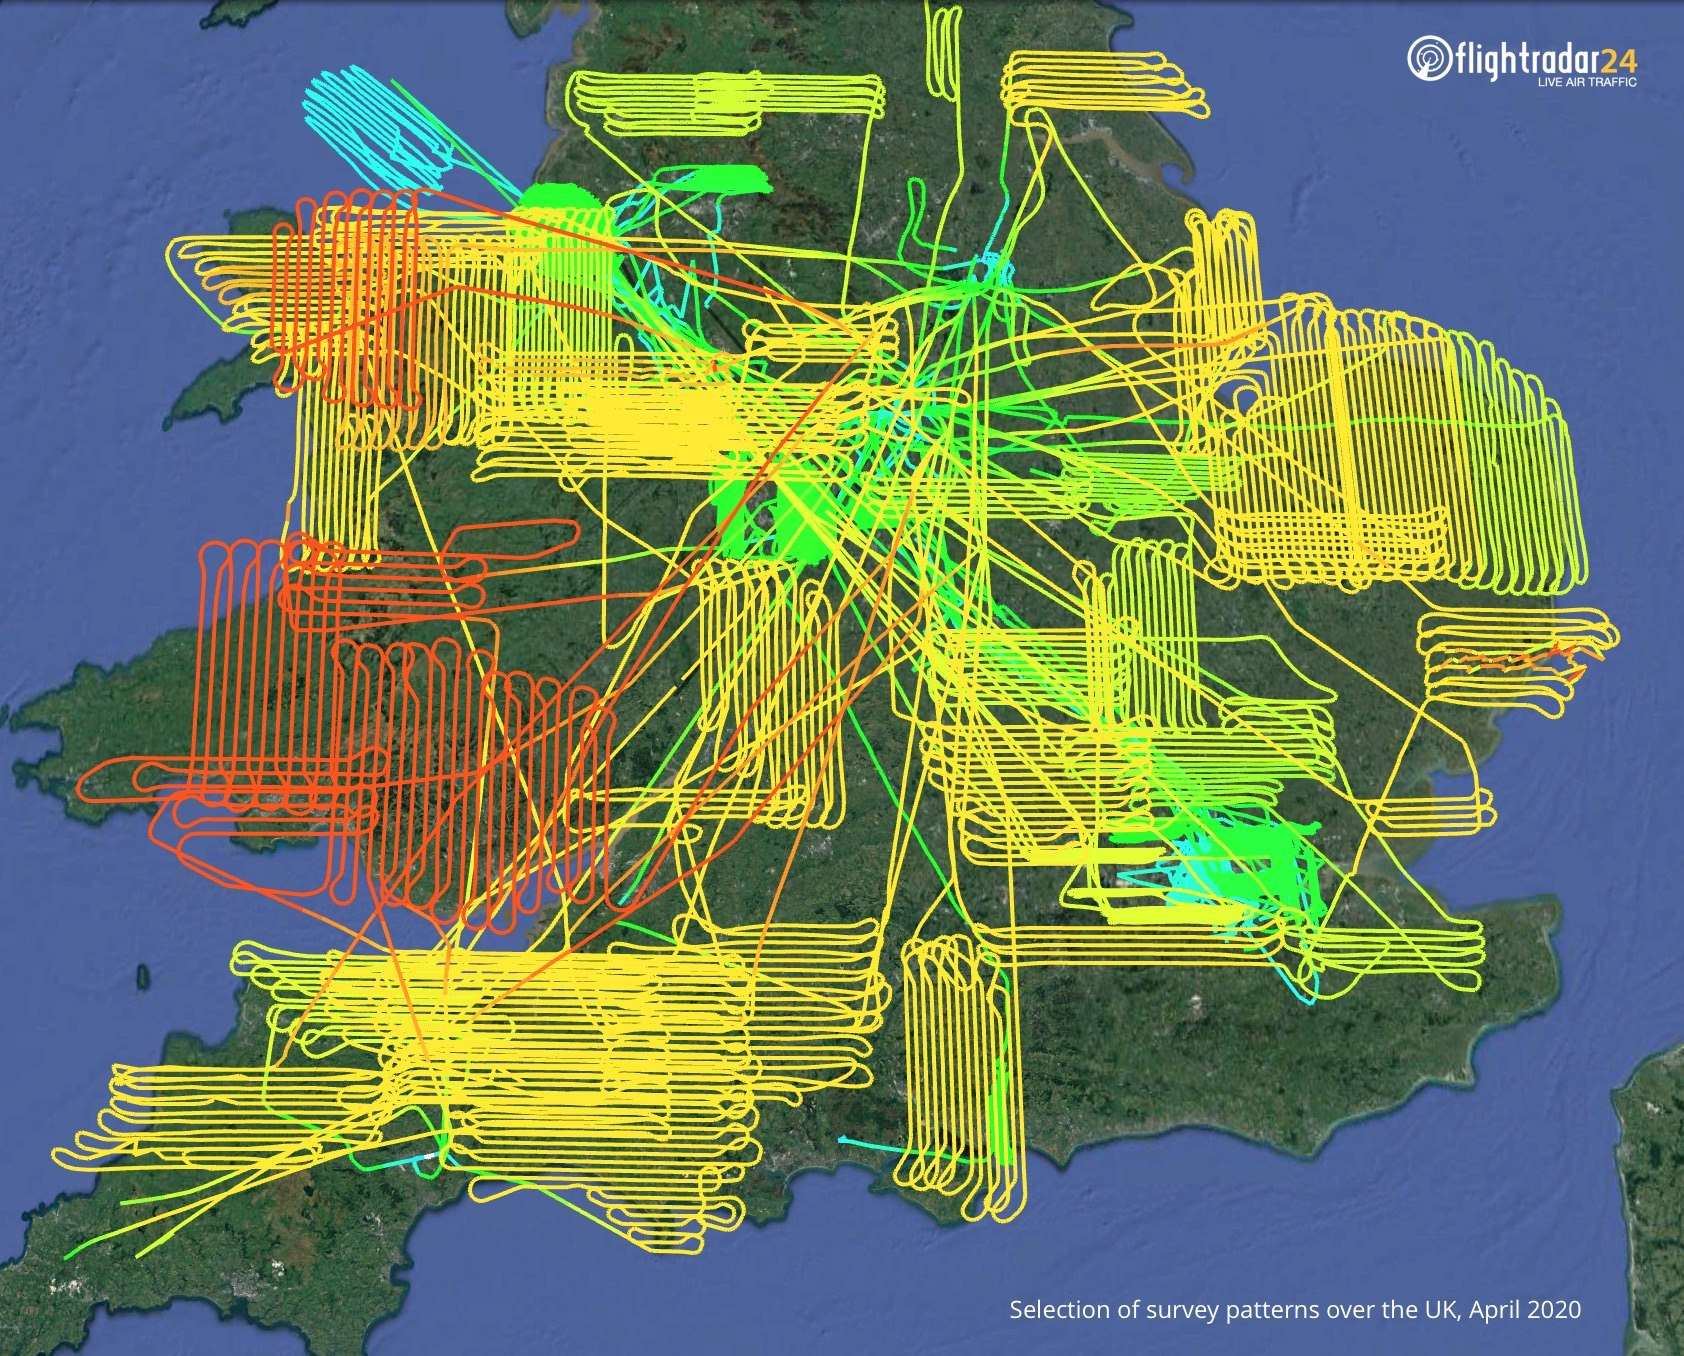 Compilation of survey flight paths over the UK in April 2020